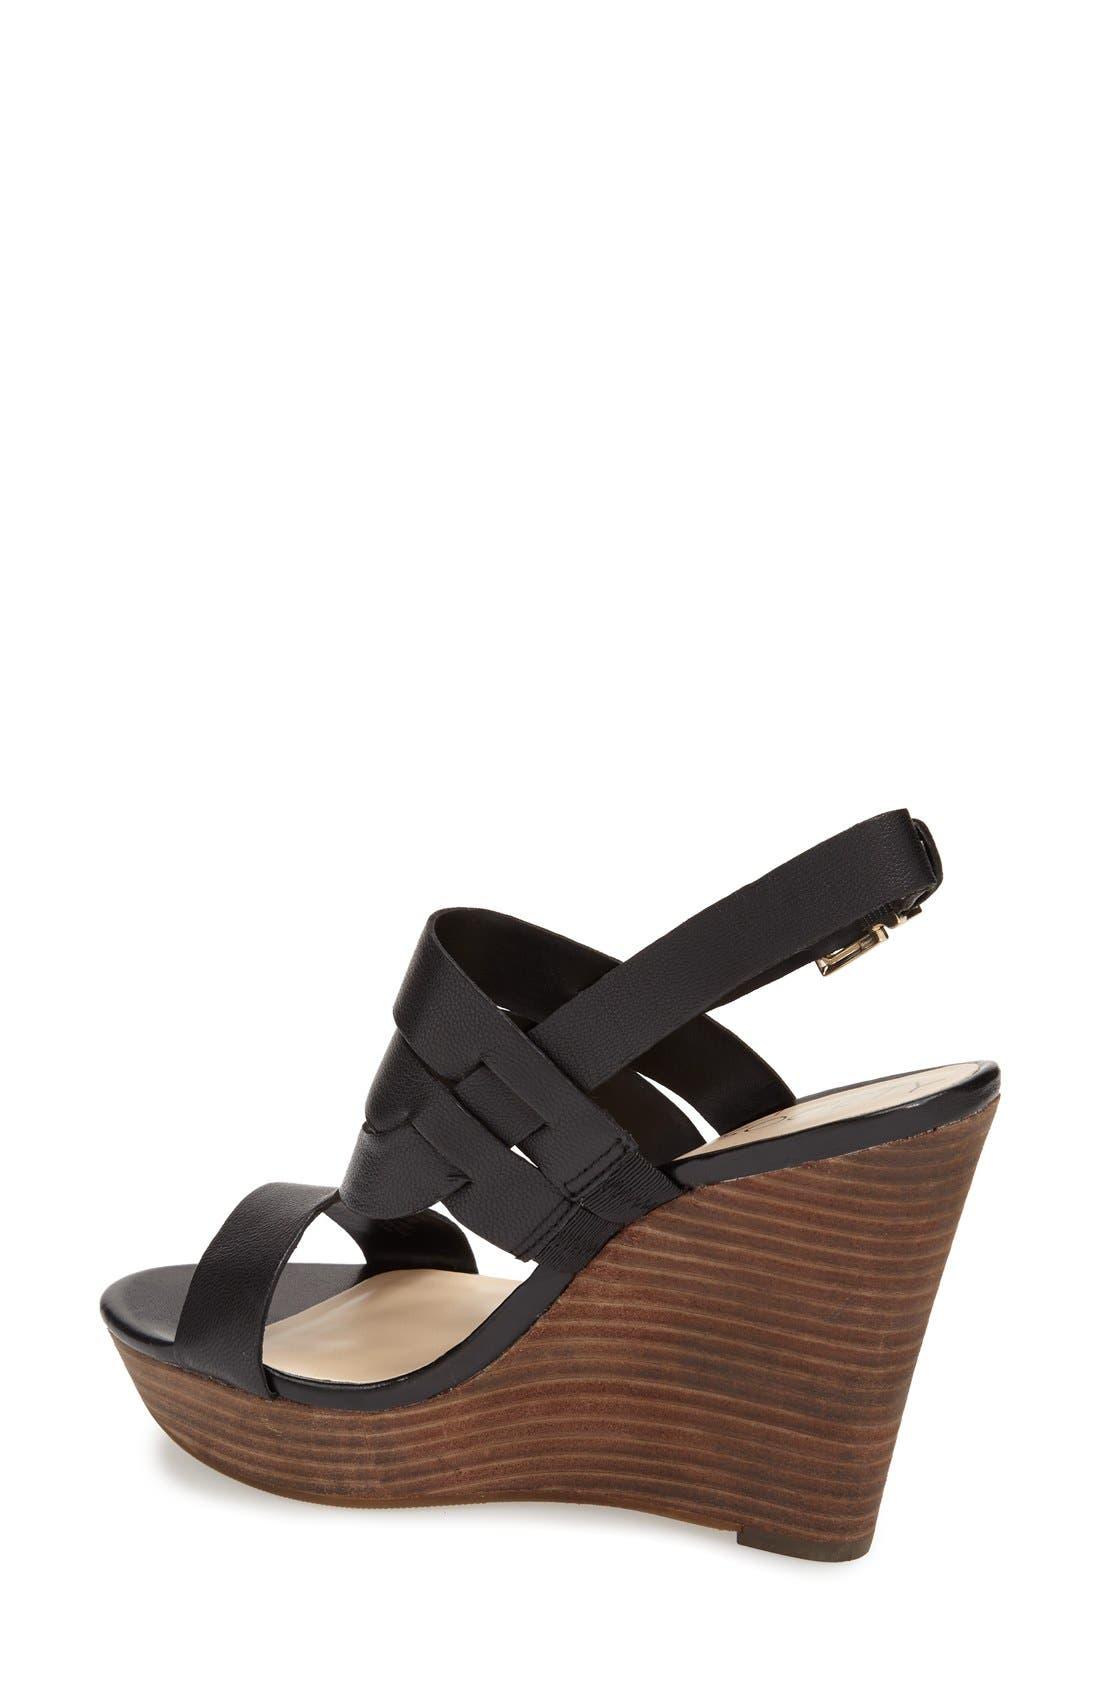 'Jenny' Slingback Wedge Sandal,                             Alternate thumbnail 2, color,                             001